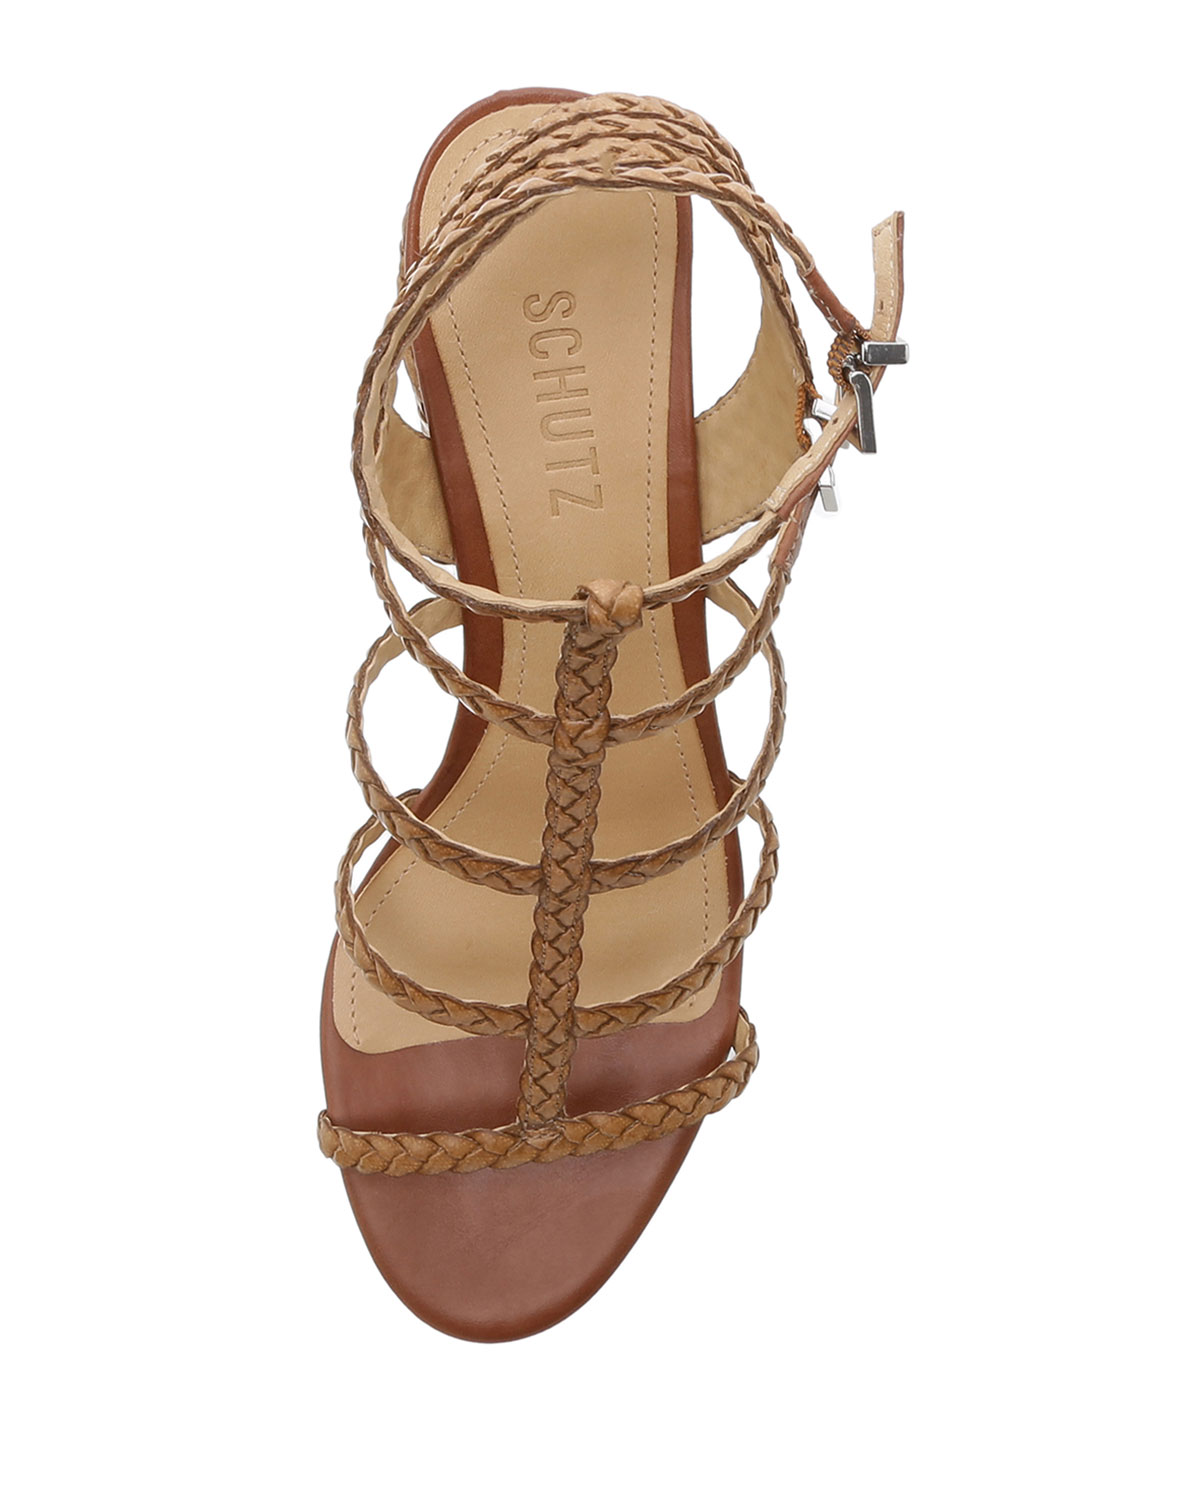 21232846ad Schutz Rosalia Braided Leather Caged Sandals | Neiman Marcus